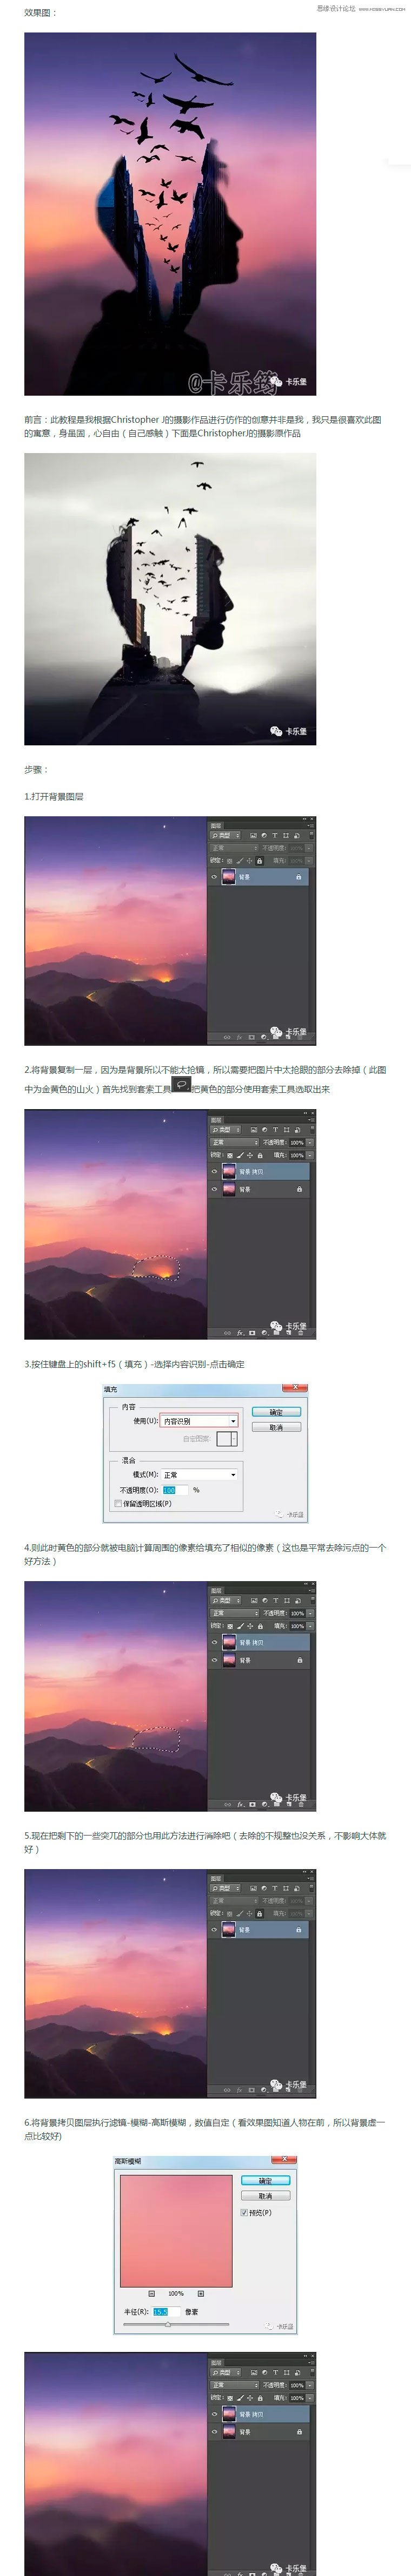 <a href=http://www.06ps.com/ target=_blank class=infotextkey>photoshop</a>创意<a href=/photoshop/hecheng/ target=_blank class=infotextkey>合成</a>人像双重曝光艺术效果,PS教程,